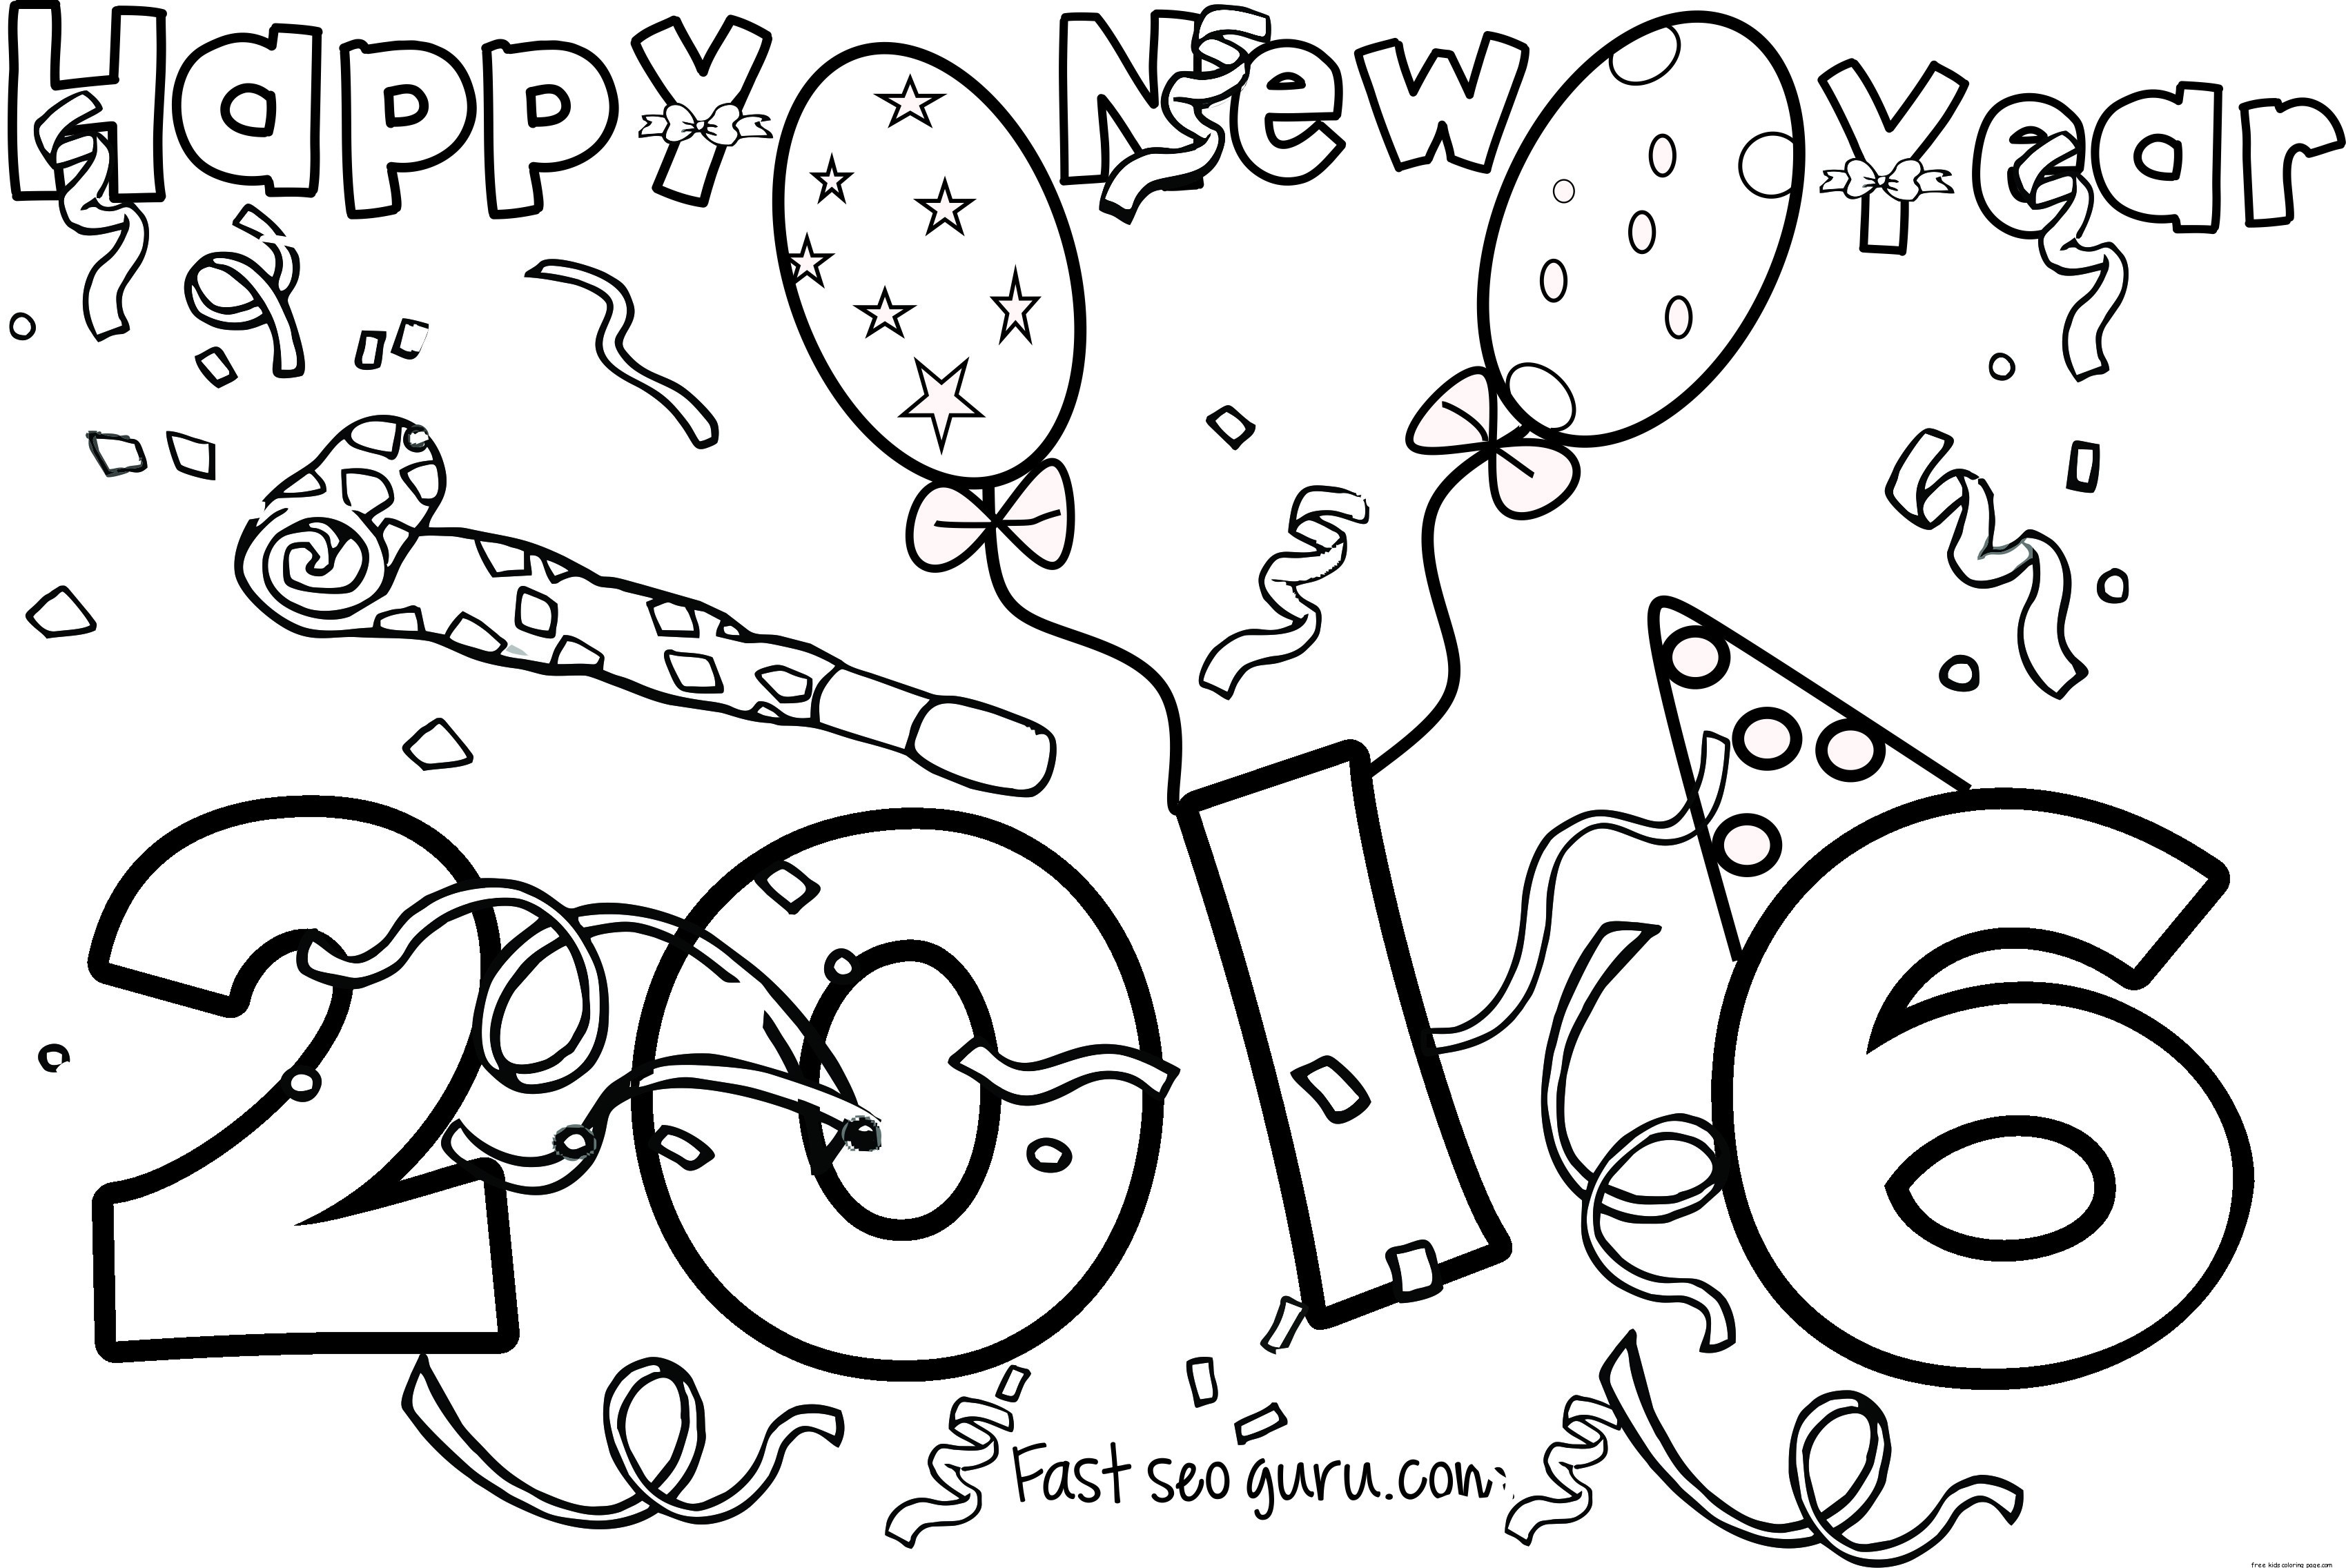 Happy New Year 2017 Drawing At GetDrawings